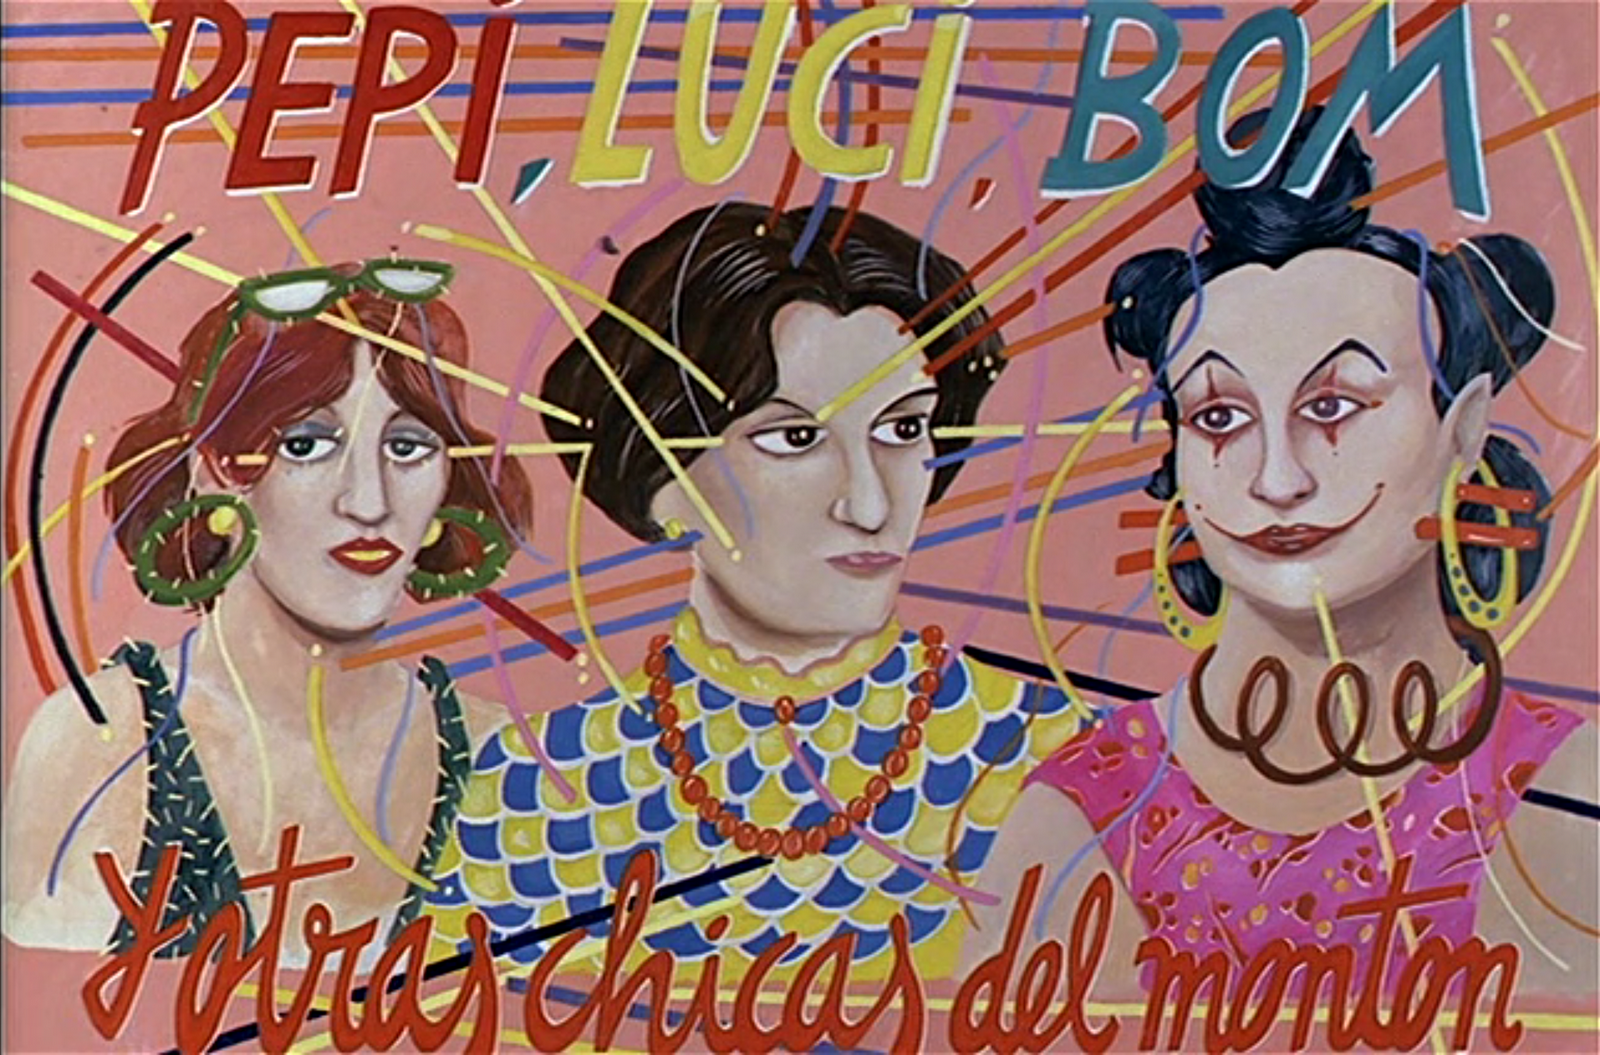 Almodóvar's first feature film,  Pepi, Luci, Bom  (1980), pulled influences from all corners of European and American youth culture but most of all from comic books and punk music.